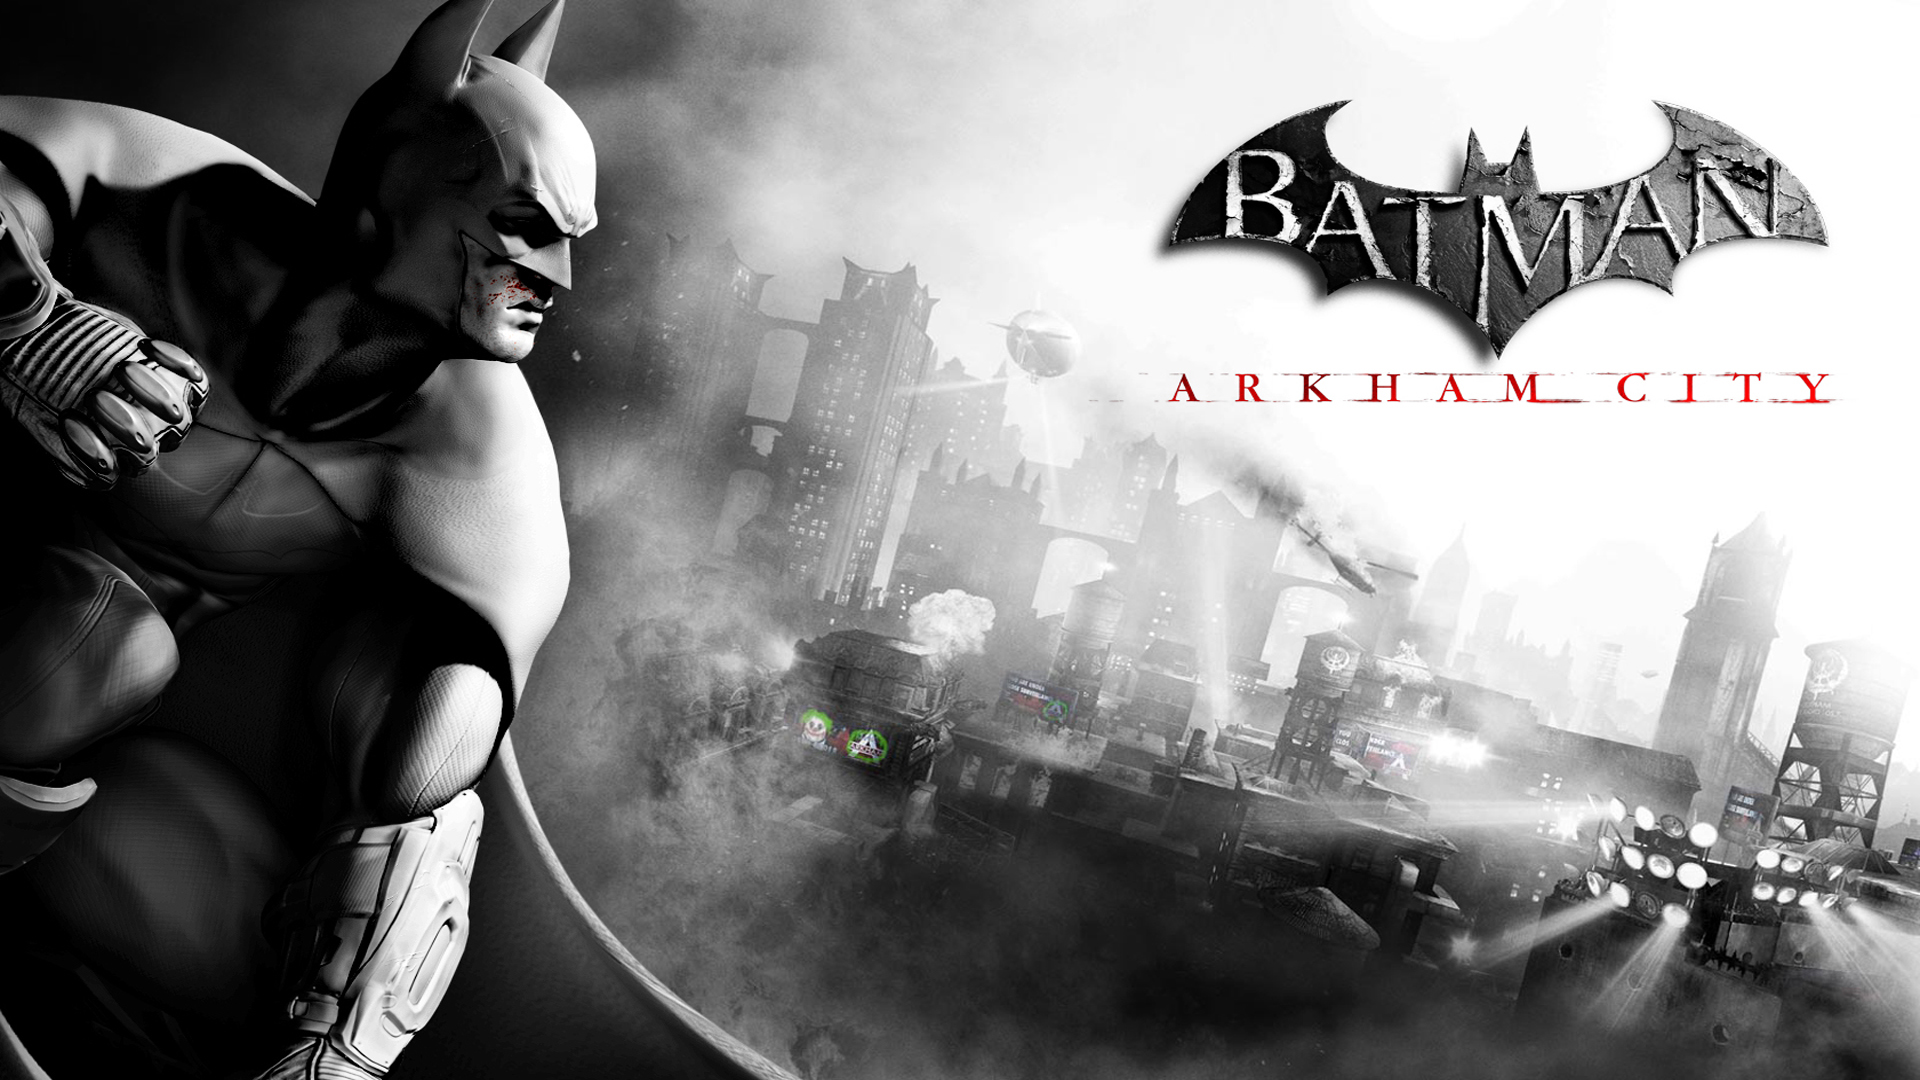 14132 download wallpaper Cinema, Batman screensavers and pictures for free